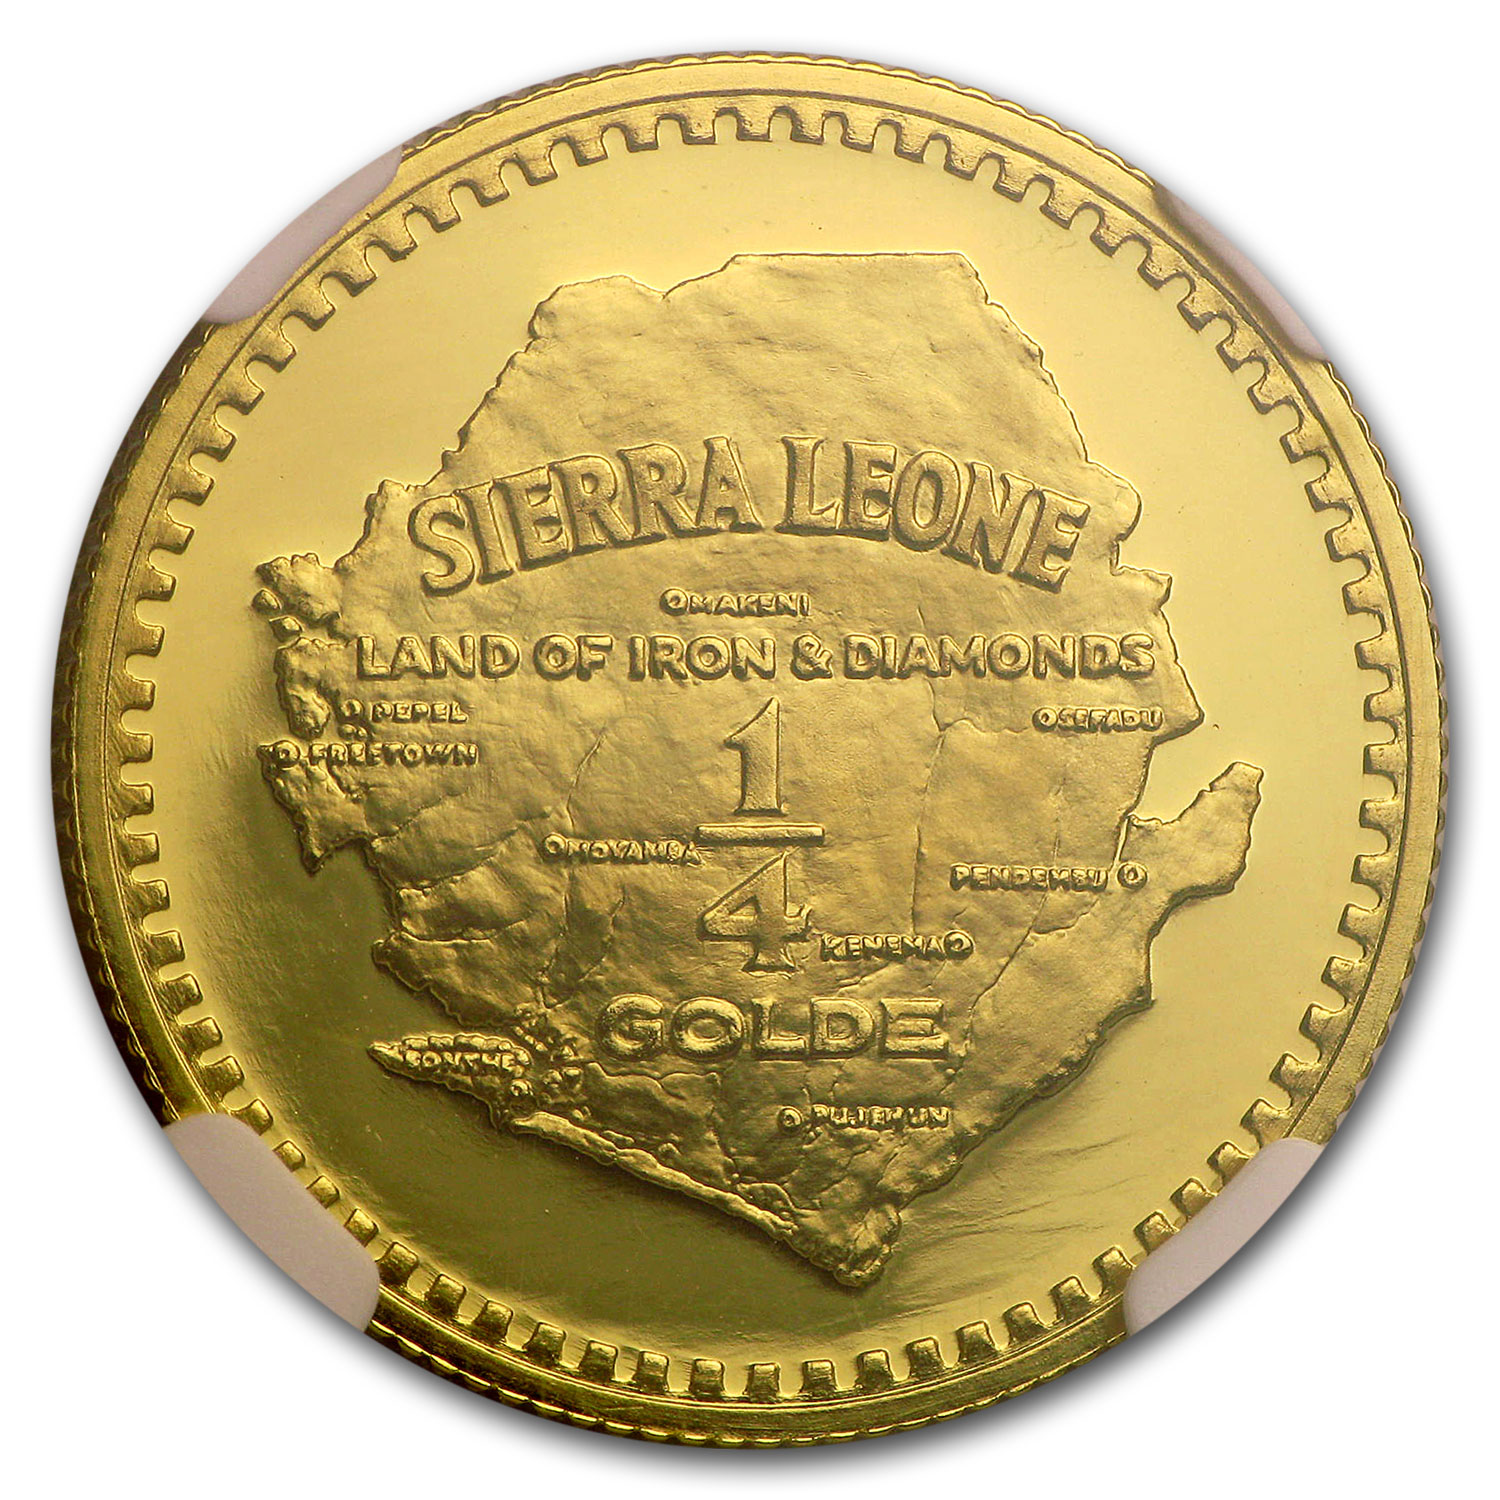 1966 Sierra Leone Gold 1/4 Golde Lion Head PF-69 NGC